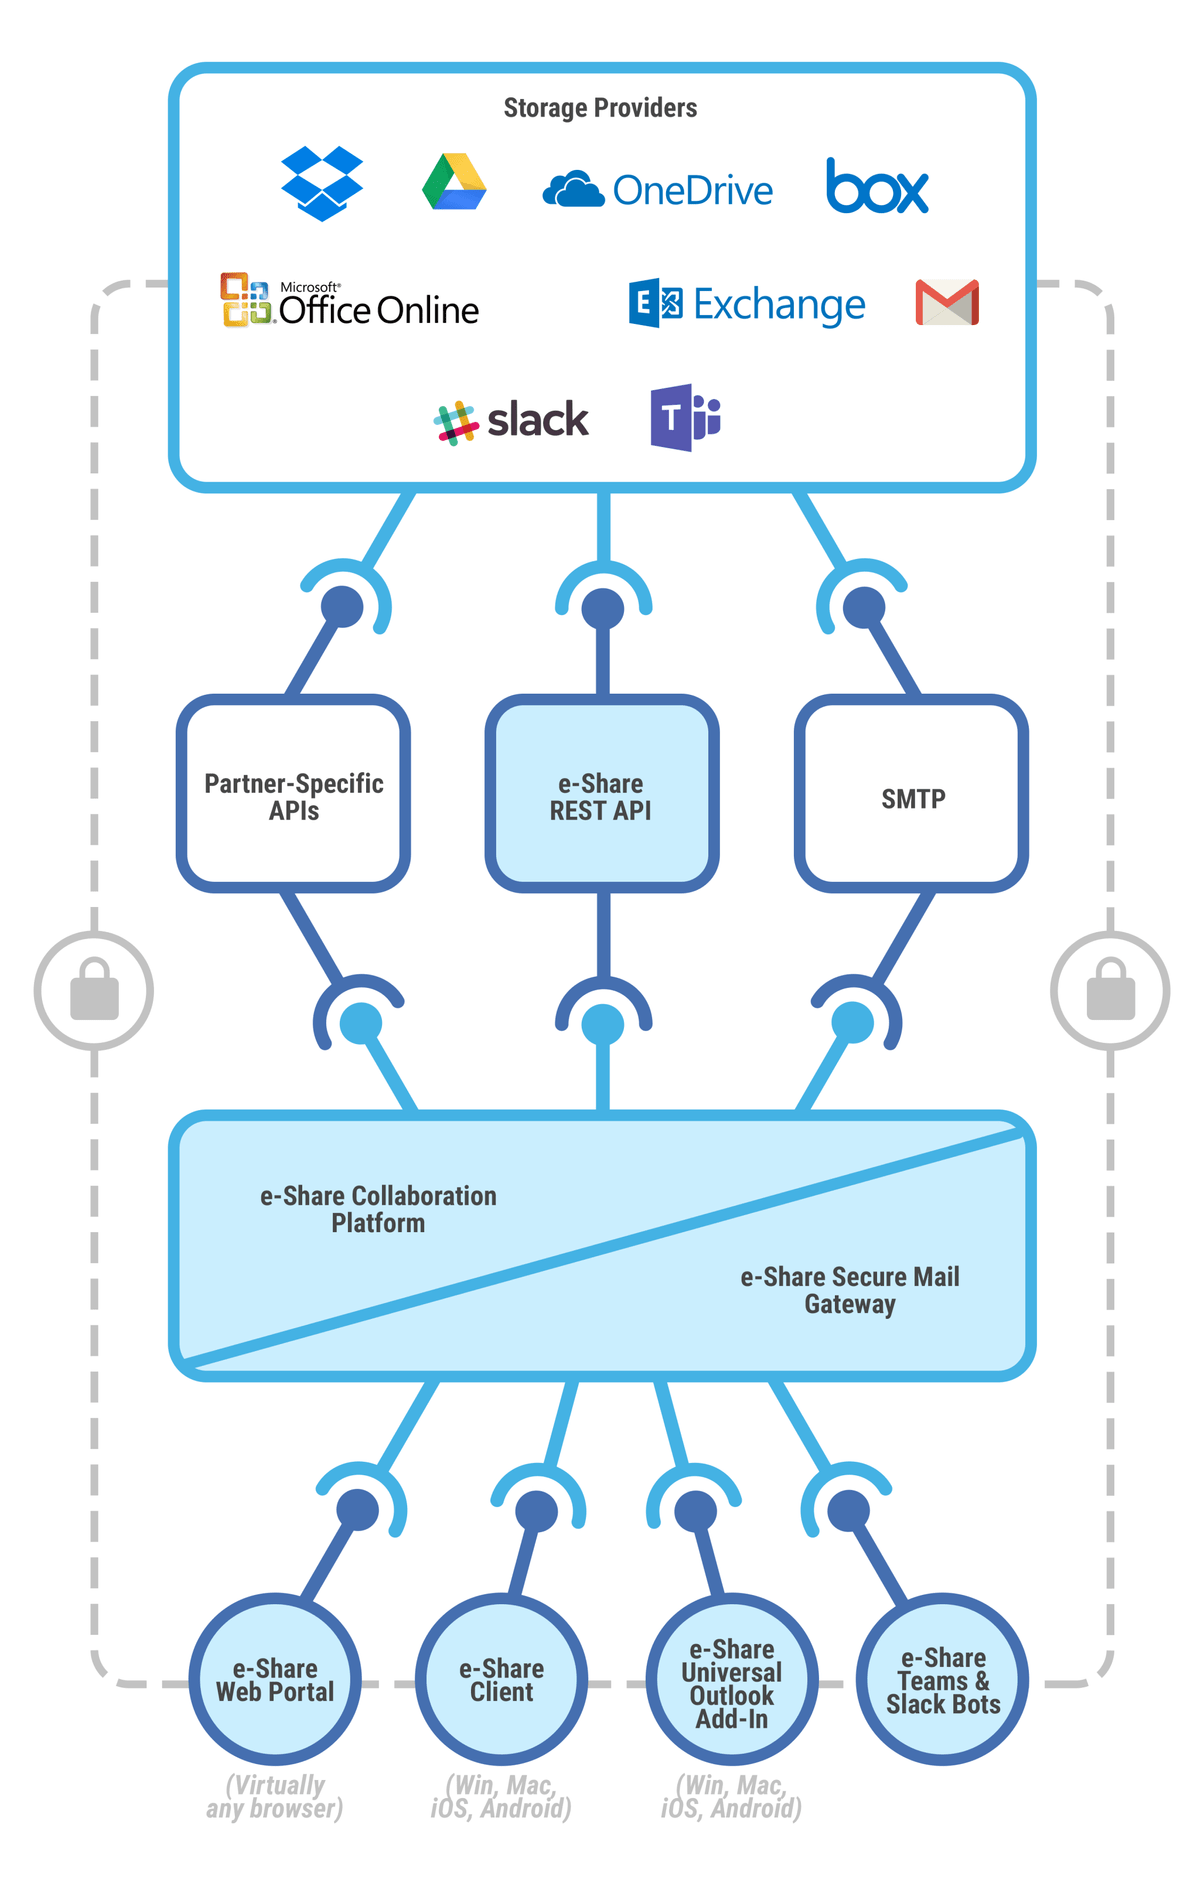 e-Share.us | Diagram of our 100% cloud platform showing e-Share web portal, client, universal Outlook add-in, Teams & Slack bots, our Collaboration Platform and Secure Mail Gateway and integrations with cloud file storage and enterprise collaboration providers plus APIs